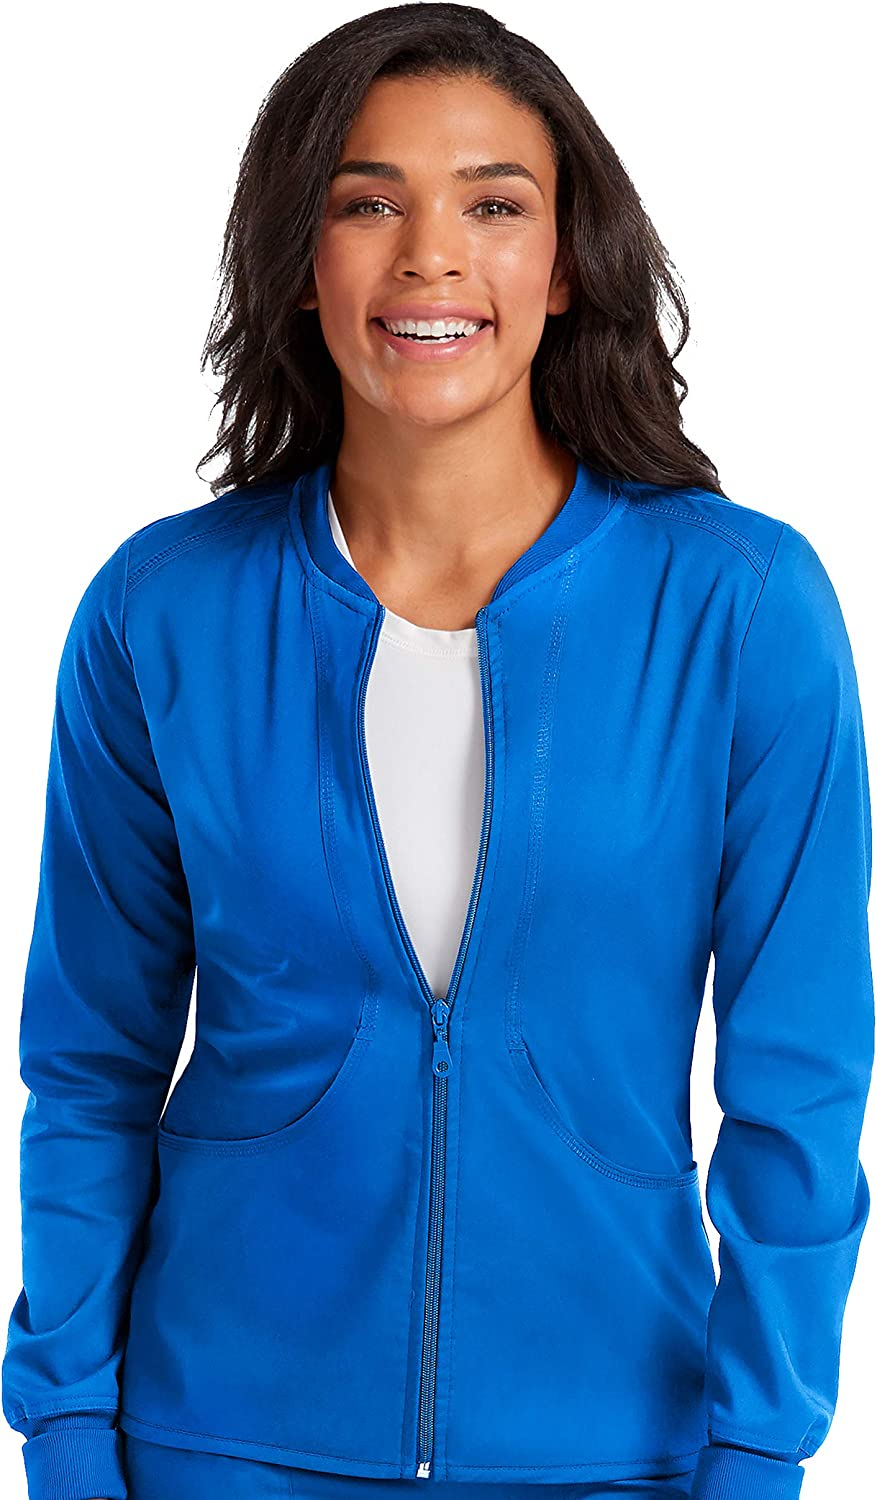 Med Couture Touch Women's Zip Front Warm Up Scrub Jacket